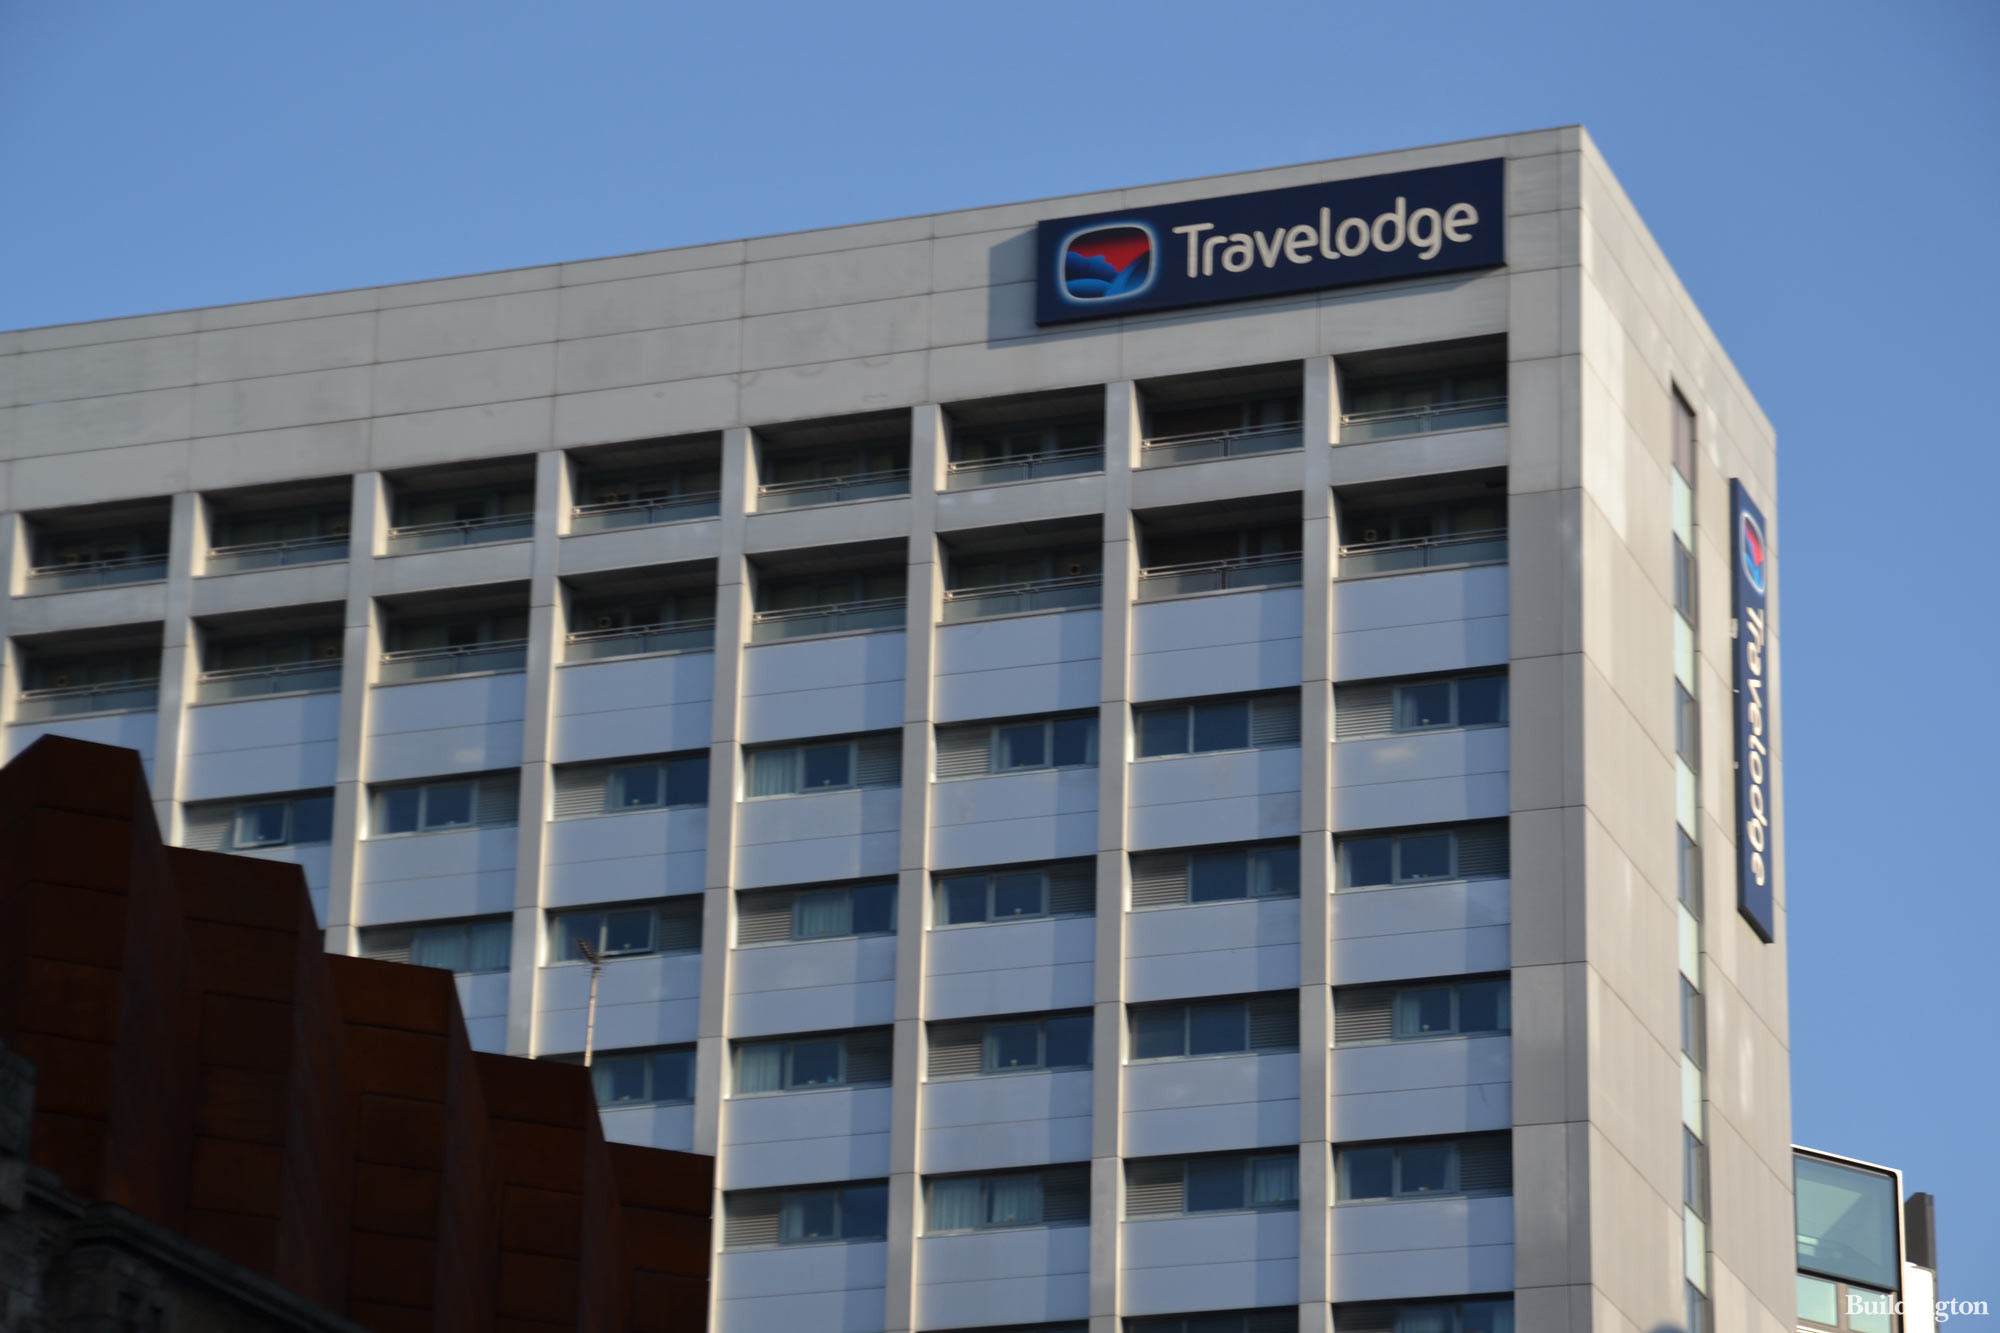 Travelodge High Holborn hotel building is part of the Selkirk House development. From Shaftersbury Avenue